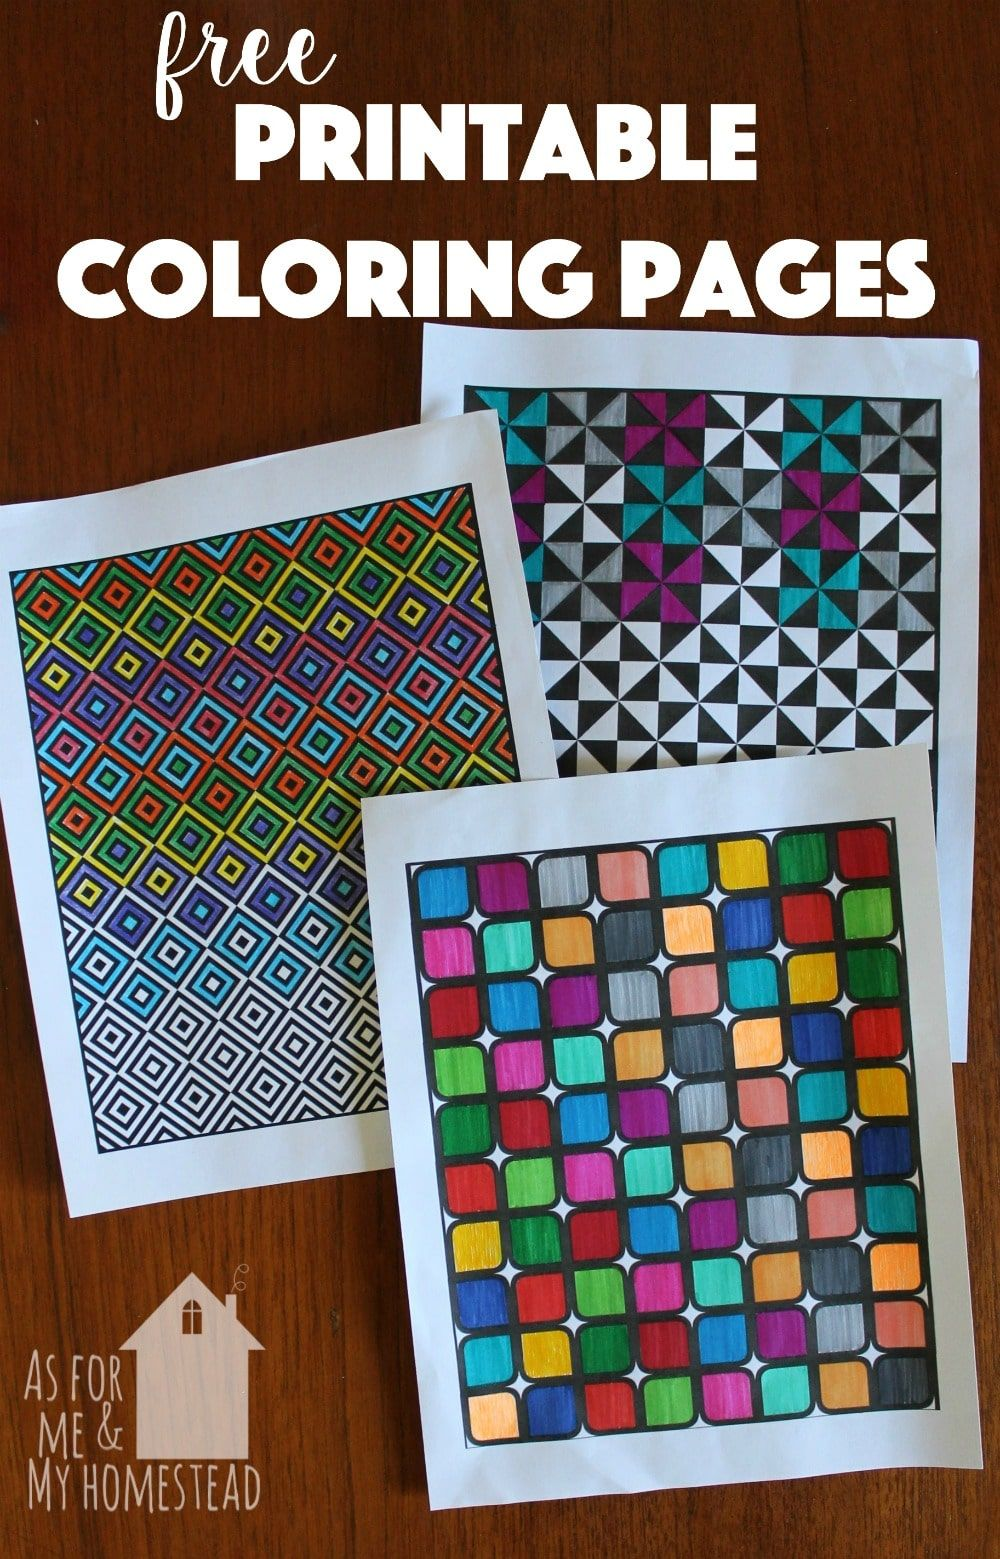 Free printable coloring pages perfect for kids or adults geometric shapes make this coloring pages simple but beautiful works of art